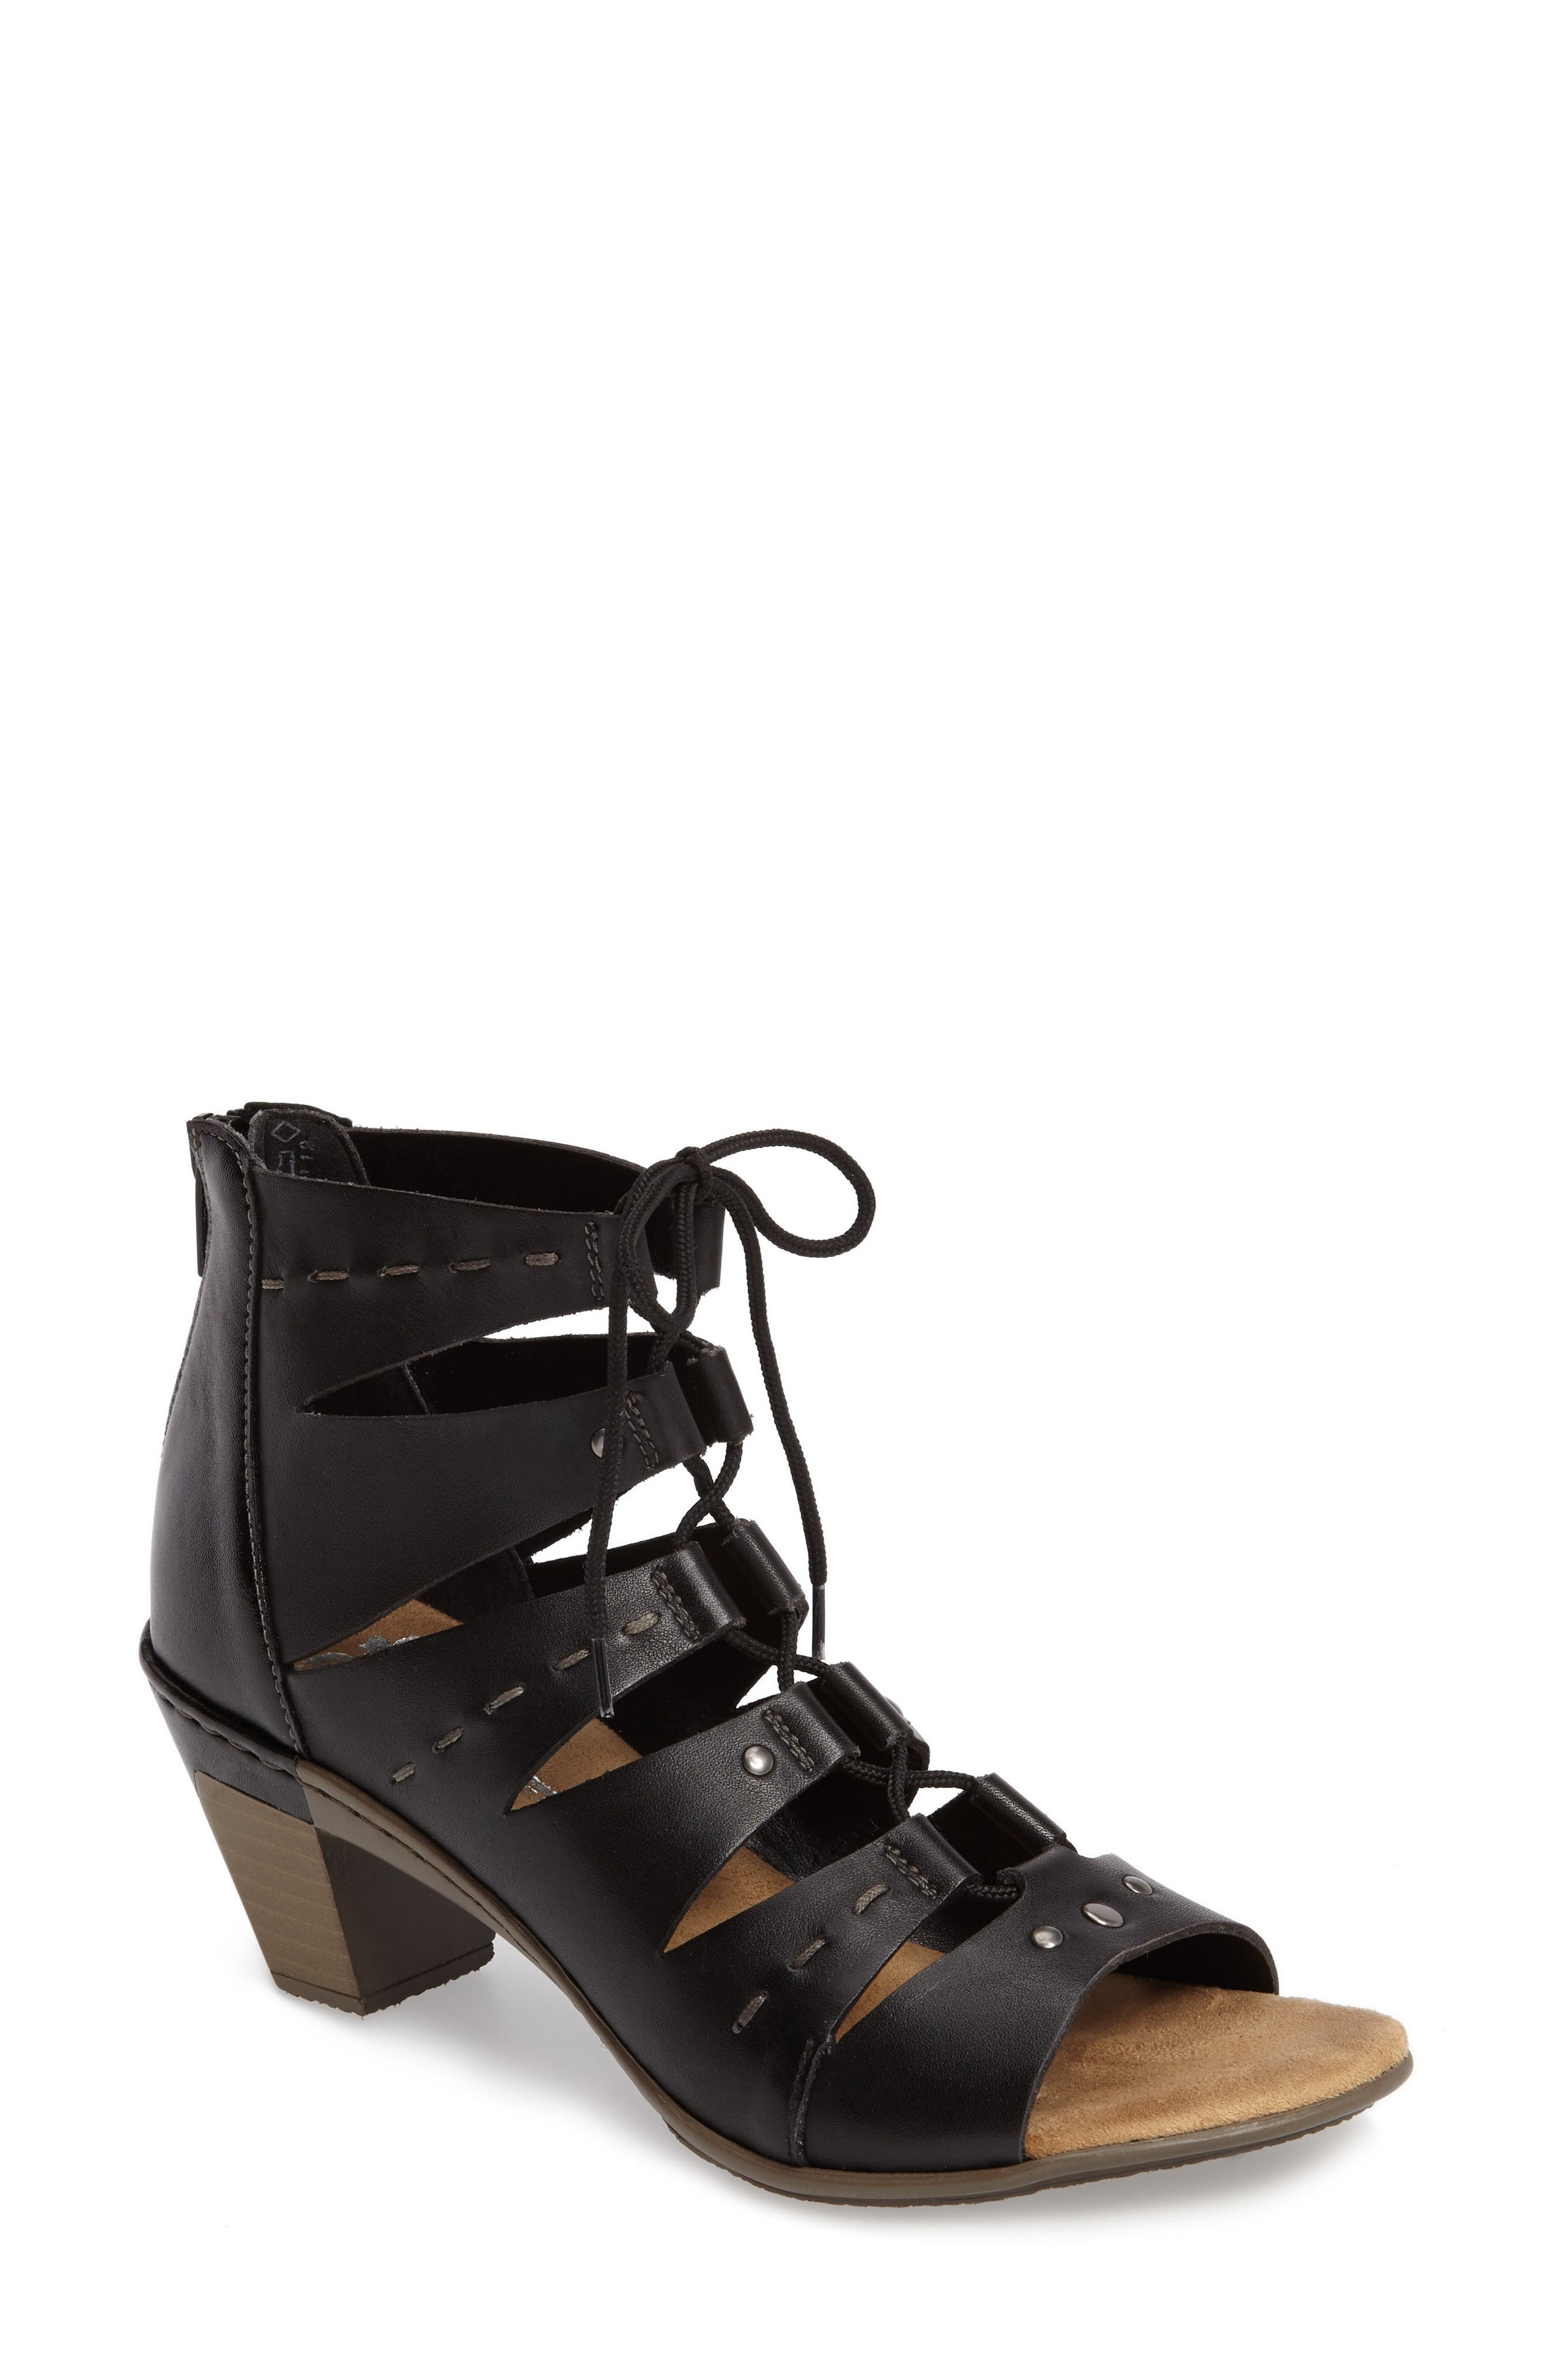 Aileen 99 Ghillie Cage Sandal,                         Main,                         color, Black Leather